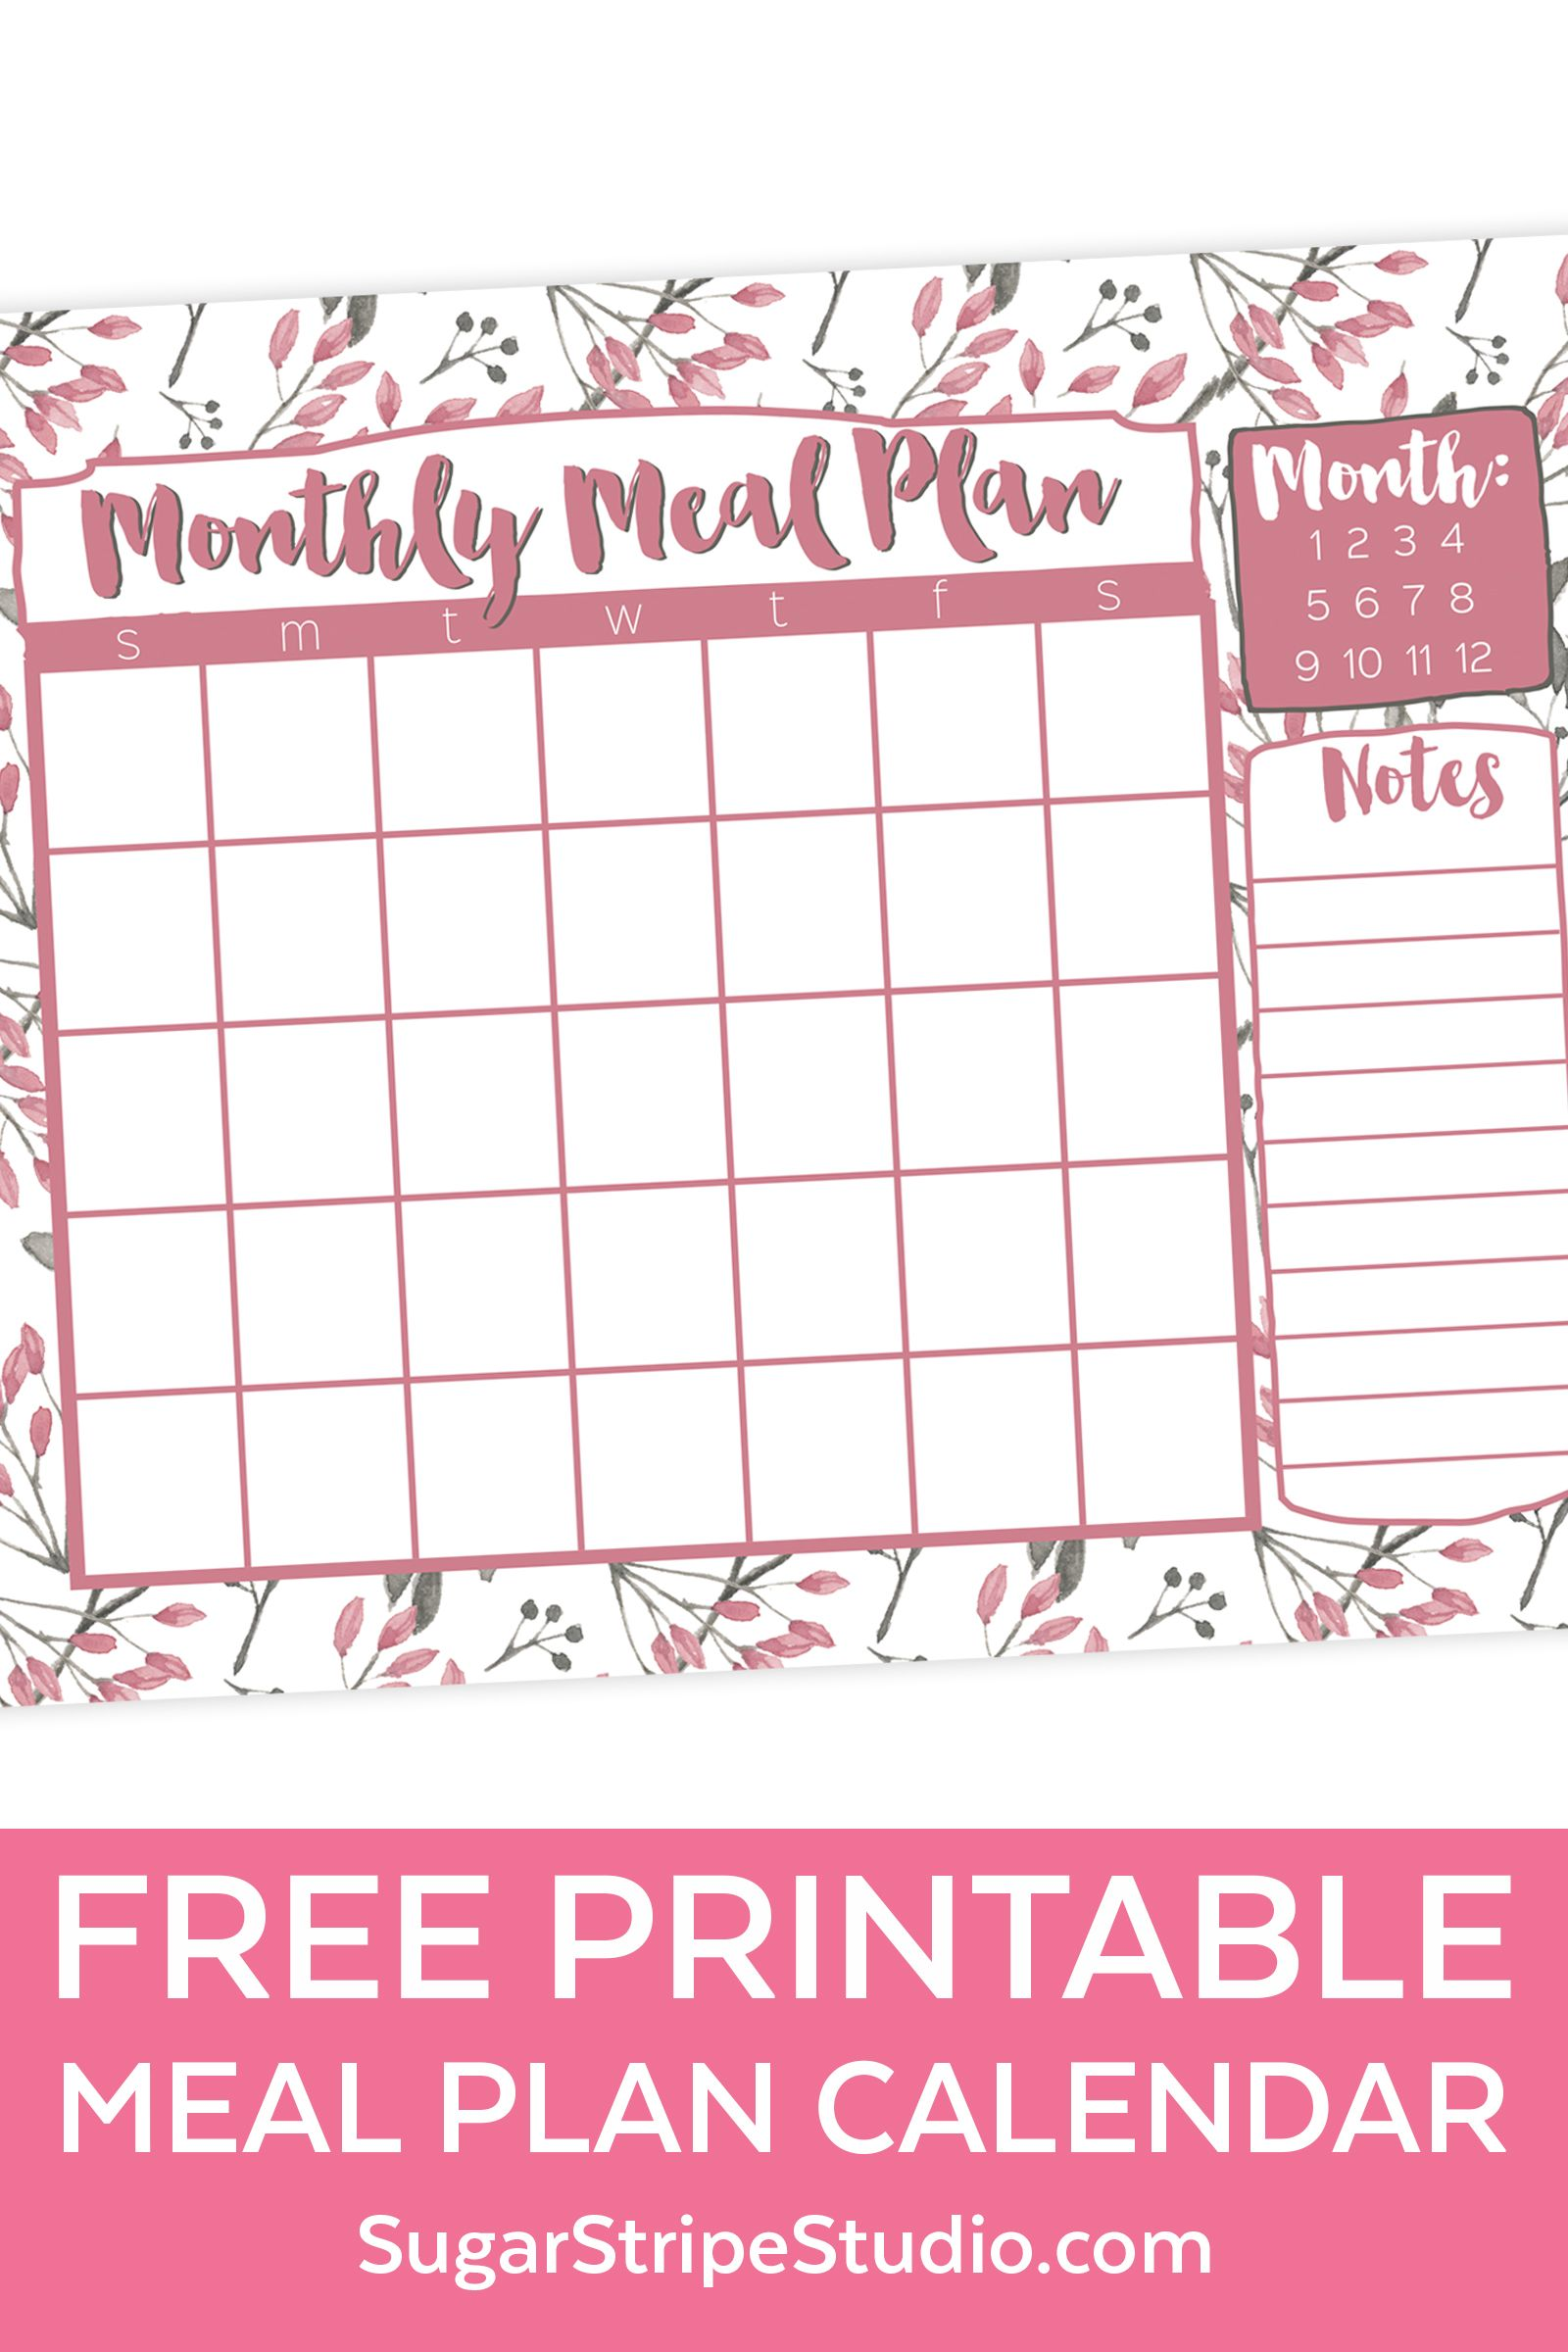 Free Monthly Meal Plan Calendar Printable Meal Planning